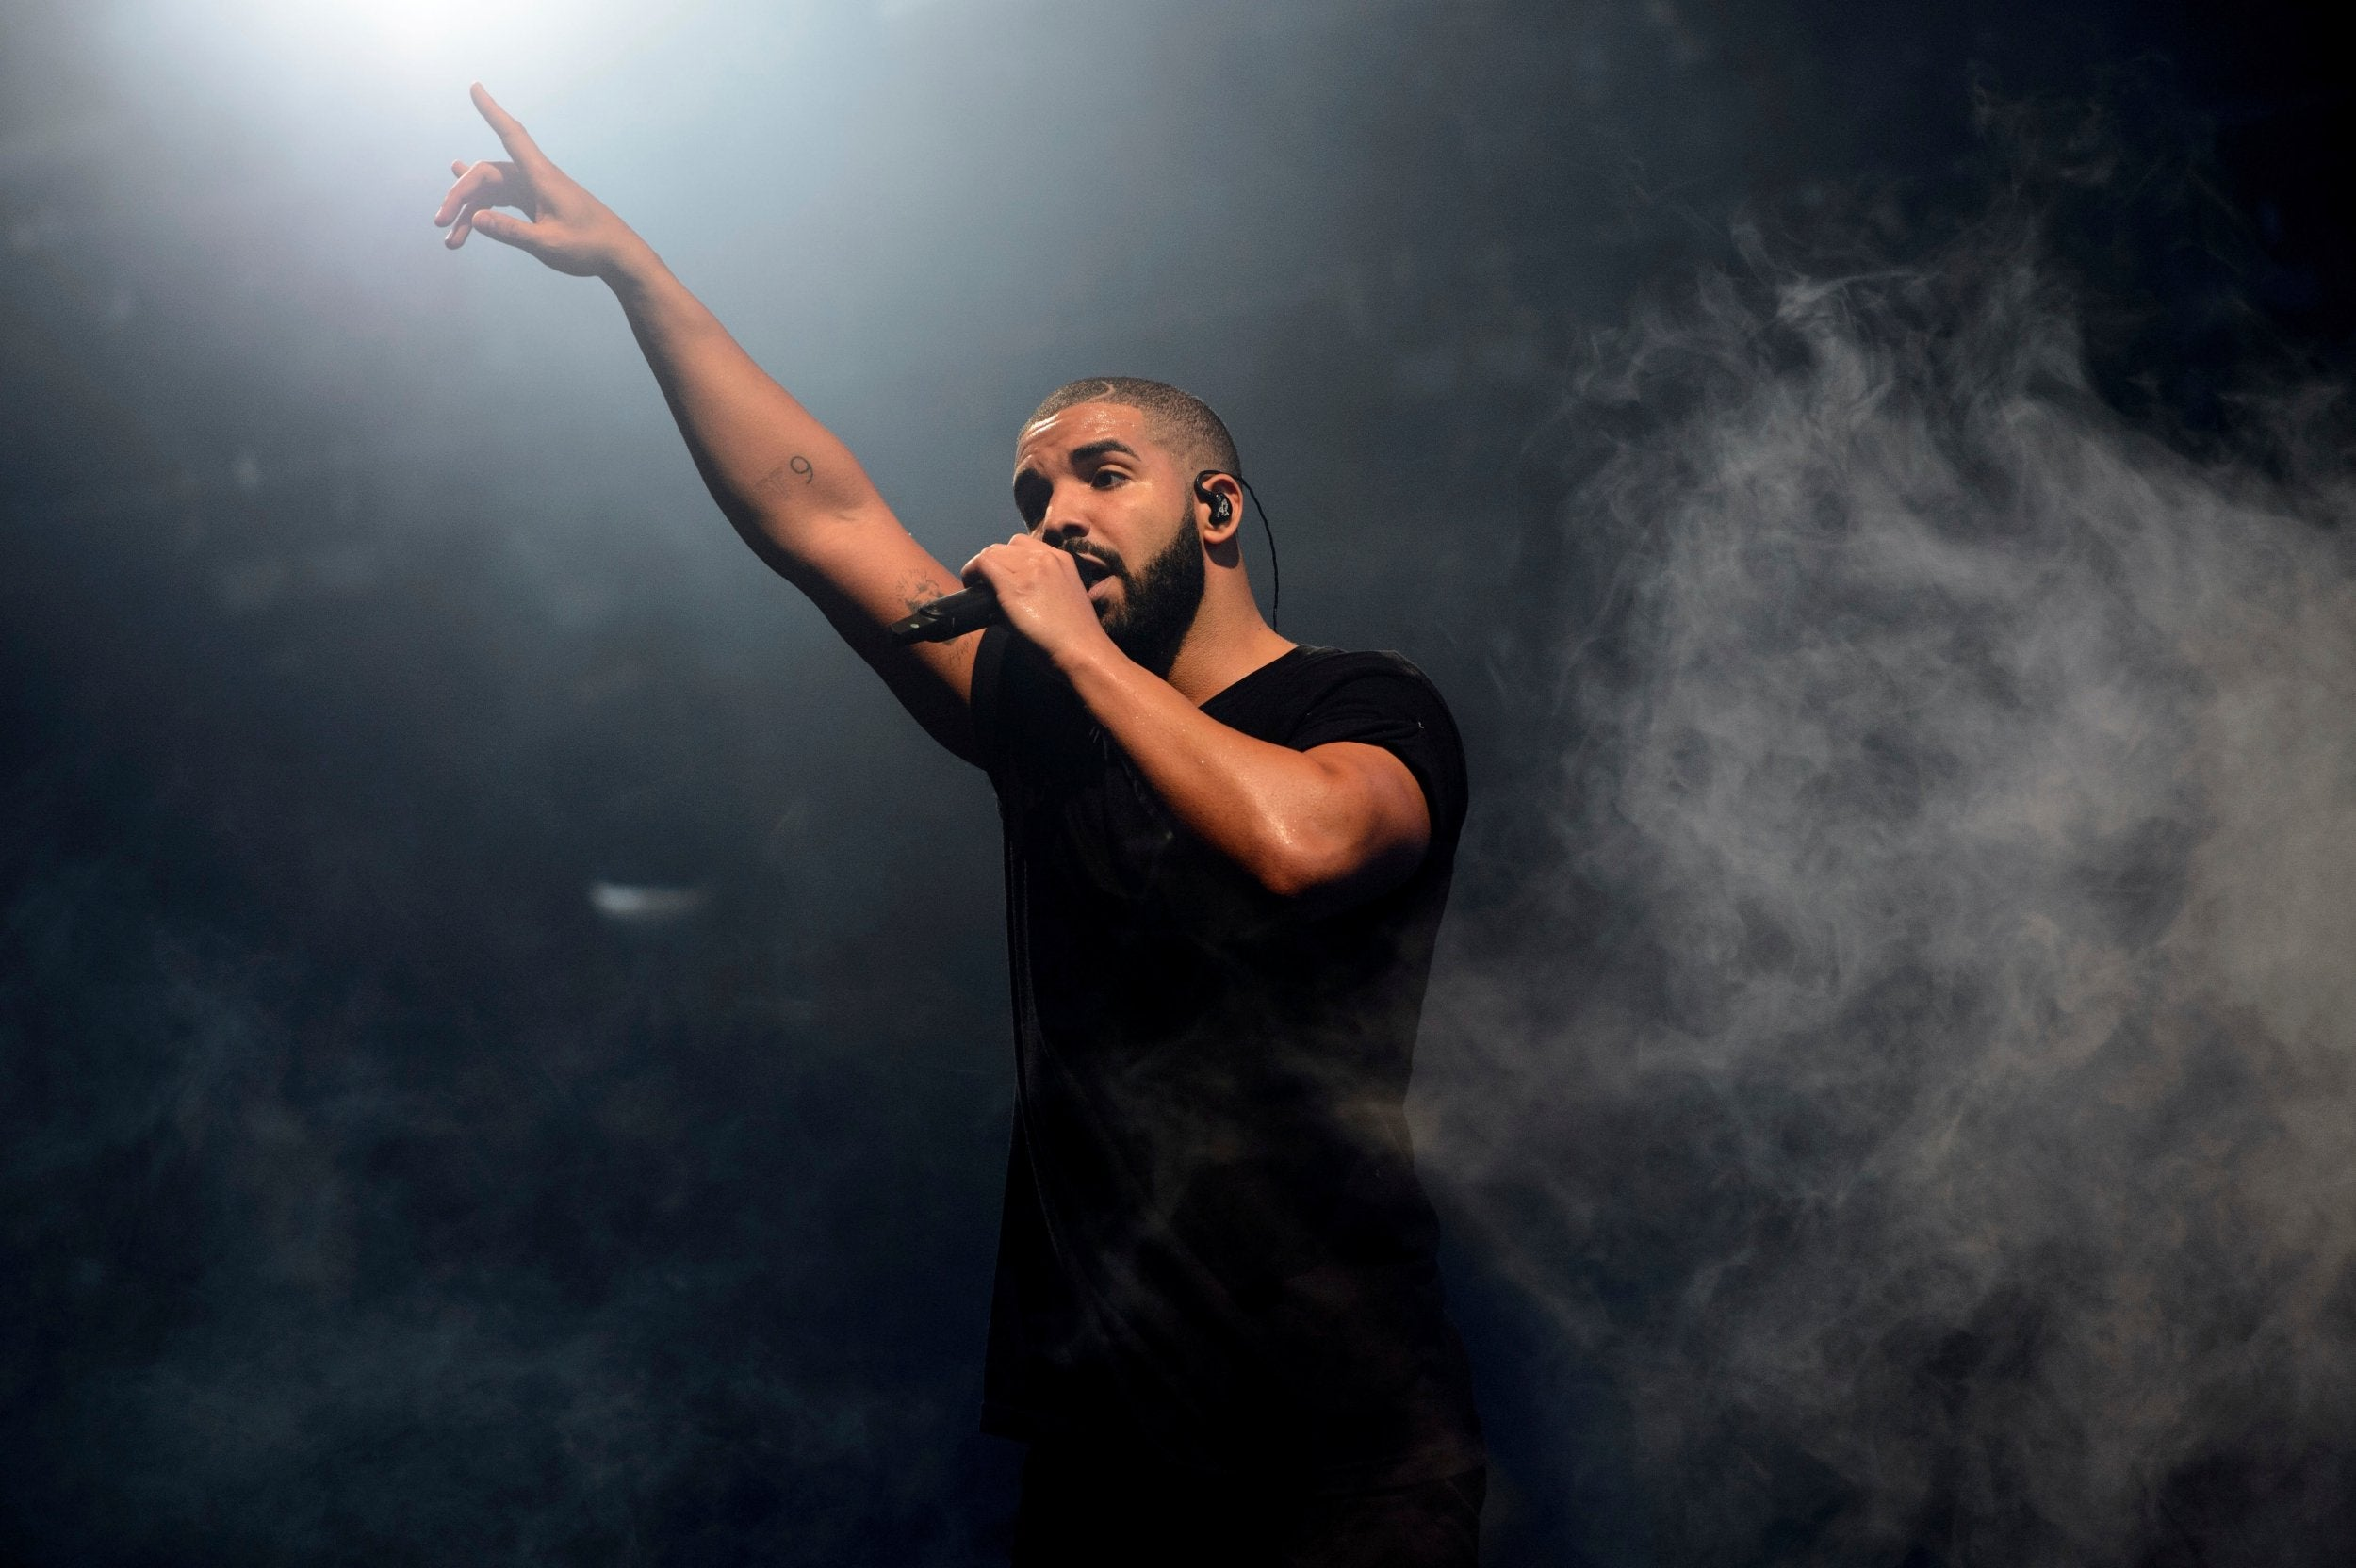 What is Drake's #KiKiChallenge and why do police say it's dangerous?